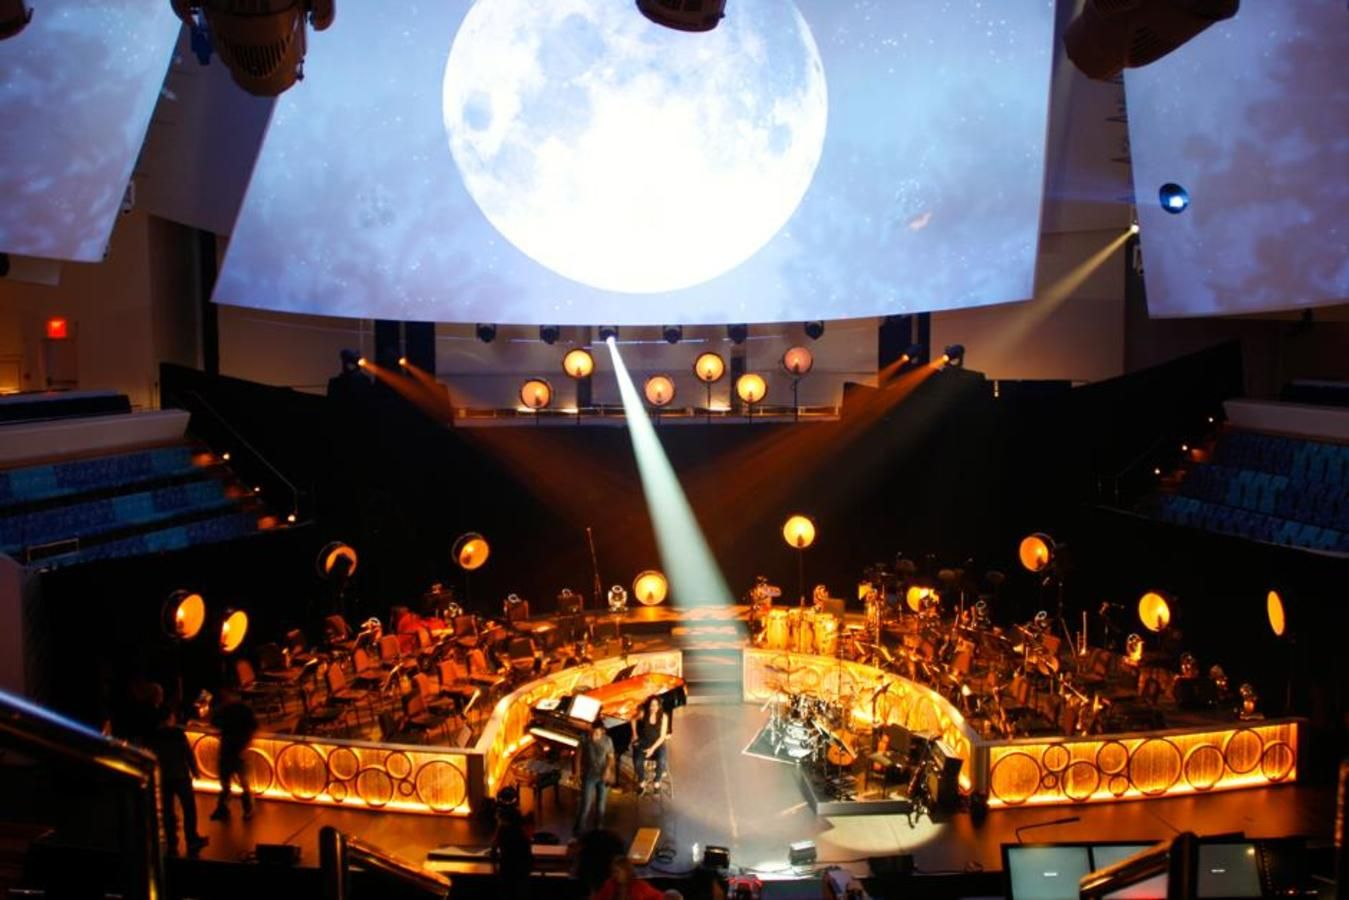 Performance Hall Concert Featuring Immersive Video Projection